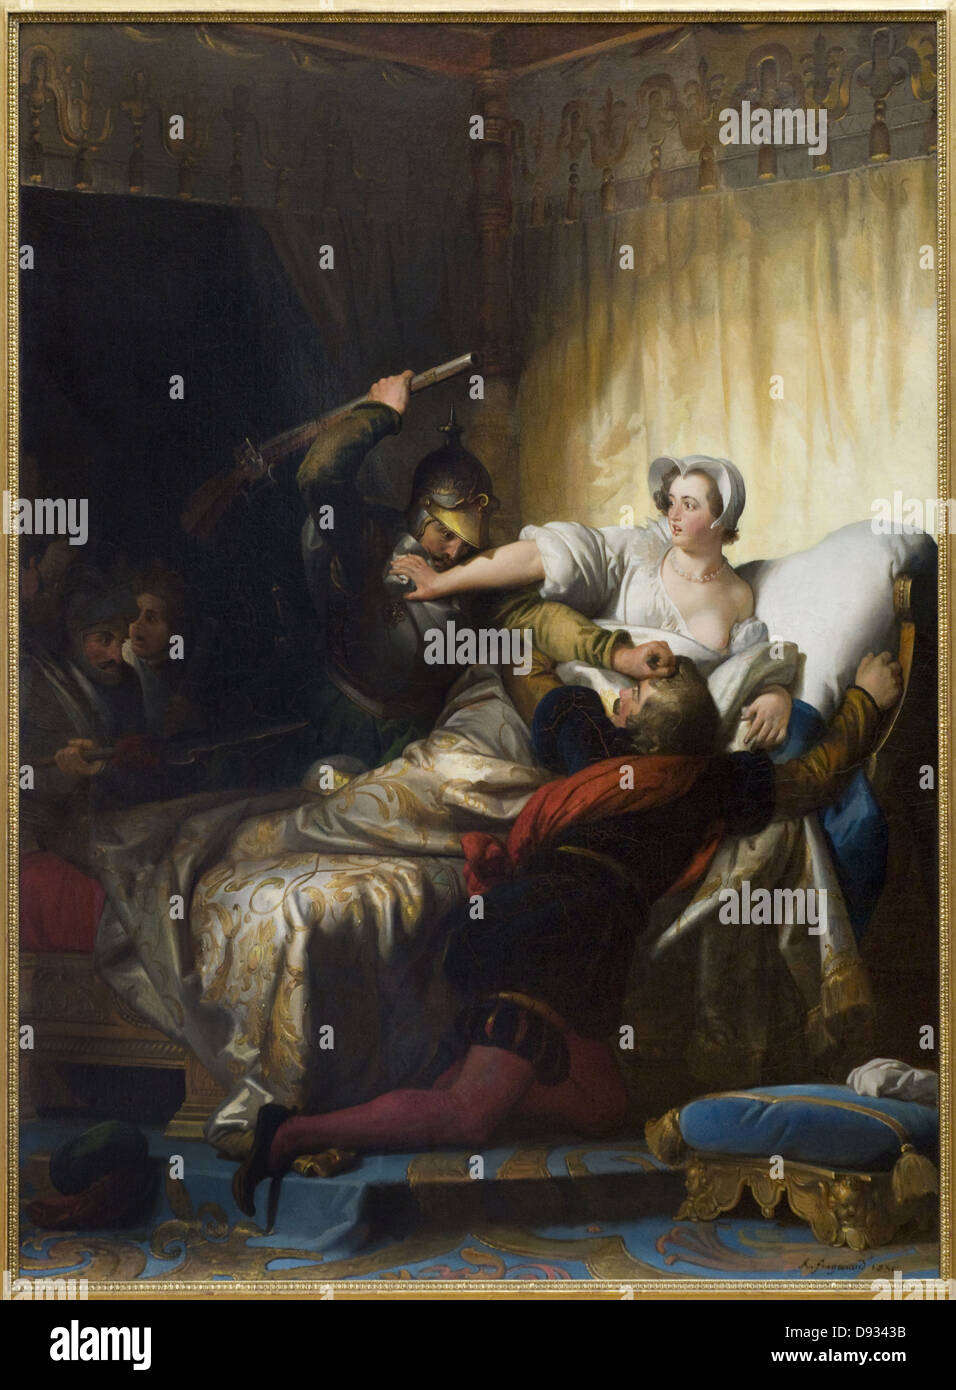 Alexandre-Evariste Fragonard Scene du massacre de la Saint-Barthelemy - Scene of the Massacre of St. Bartholomew - Stock Image